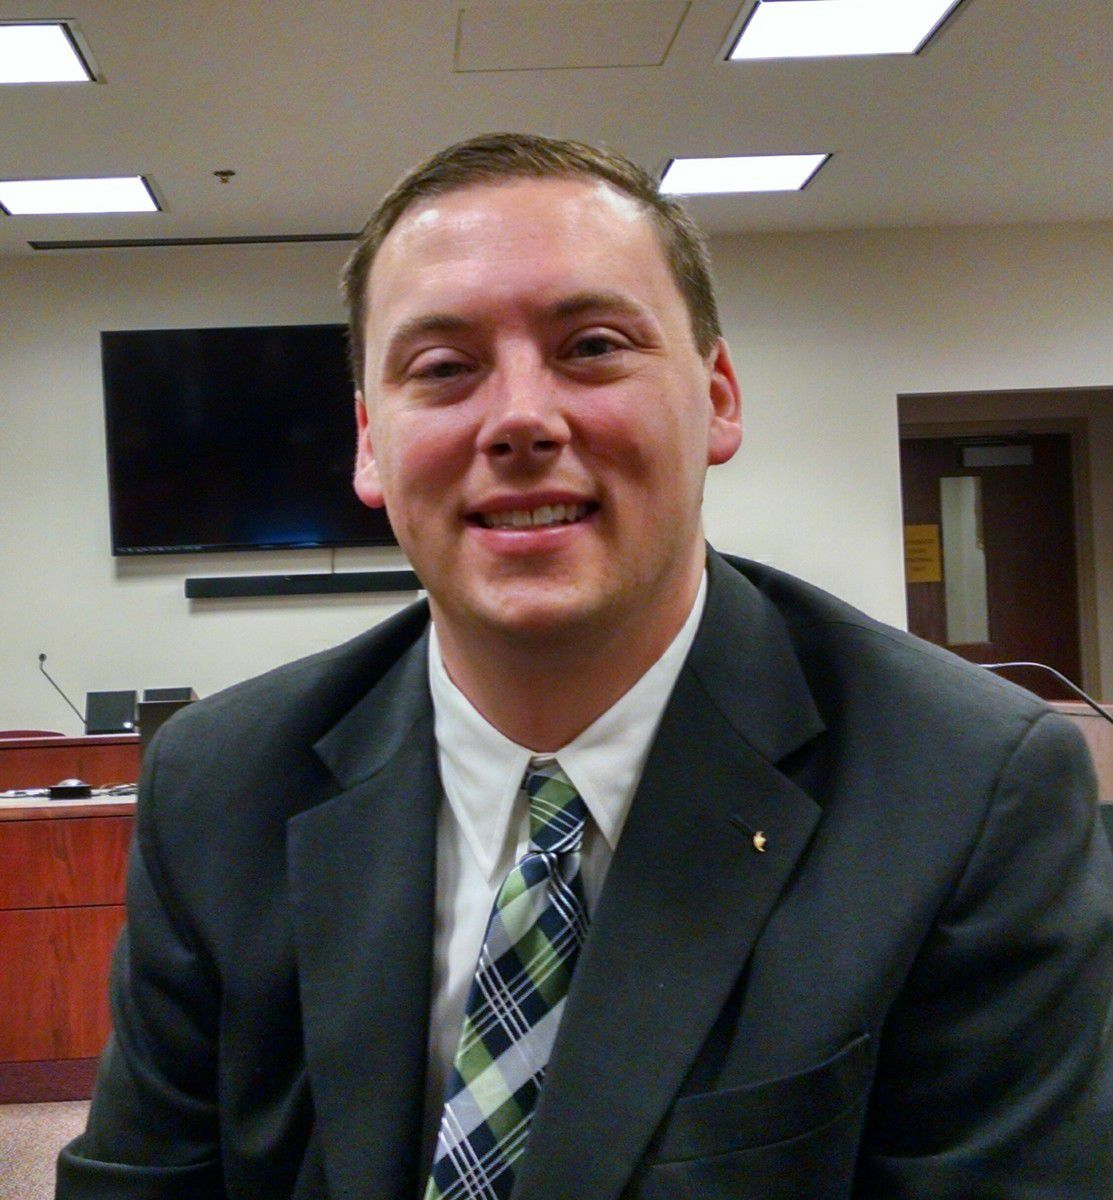 The messenger of juneau county - Juneau County Assistant District Attorney Jake Westman Last Day Will Be November 25 2016 Westman Will Be Working At The Attorney General S Office In